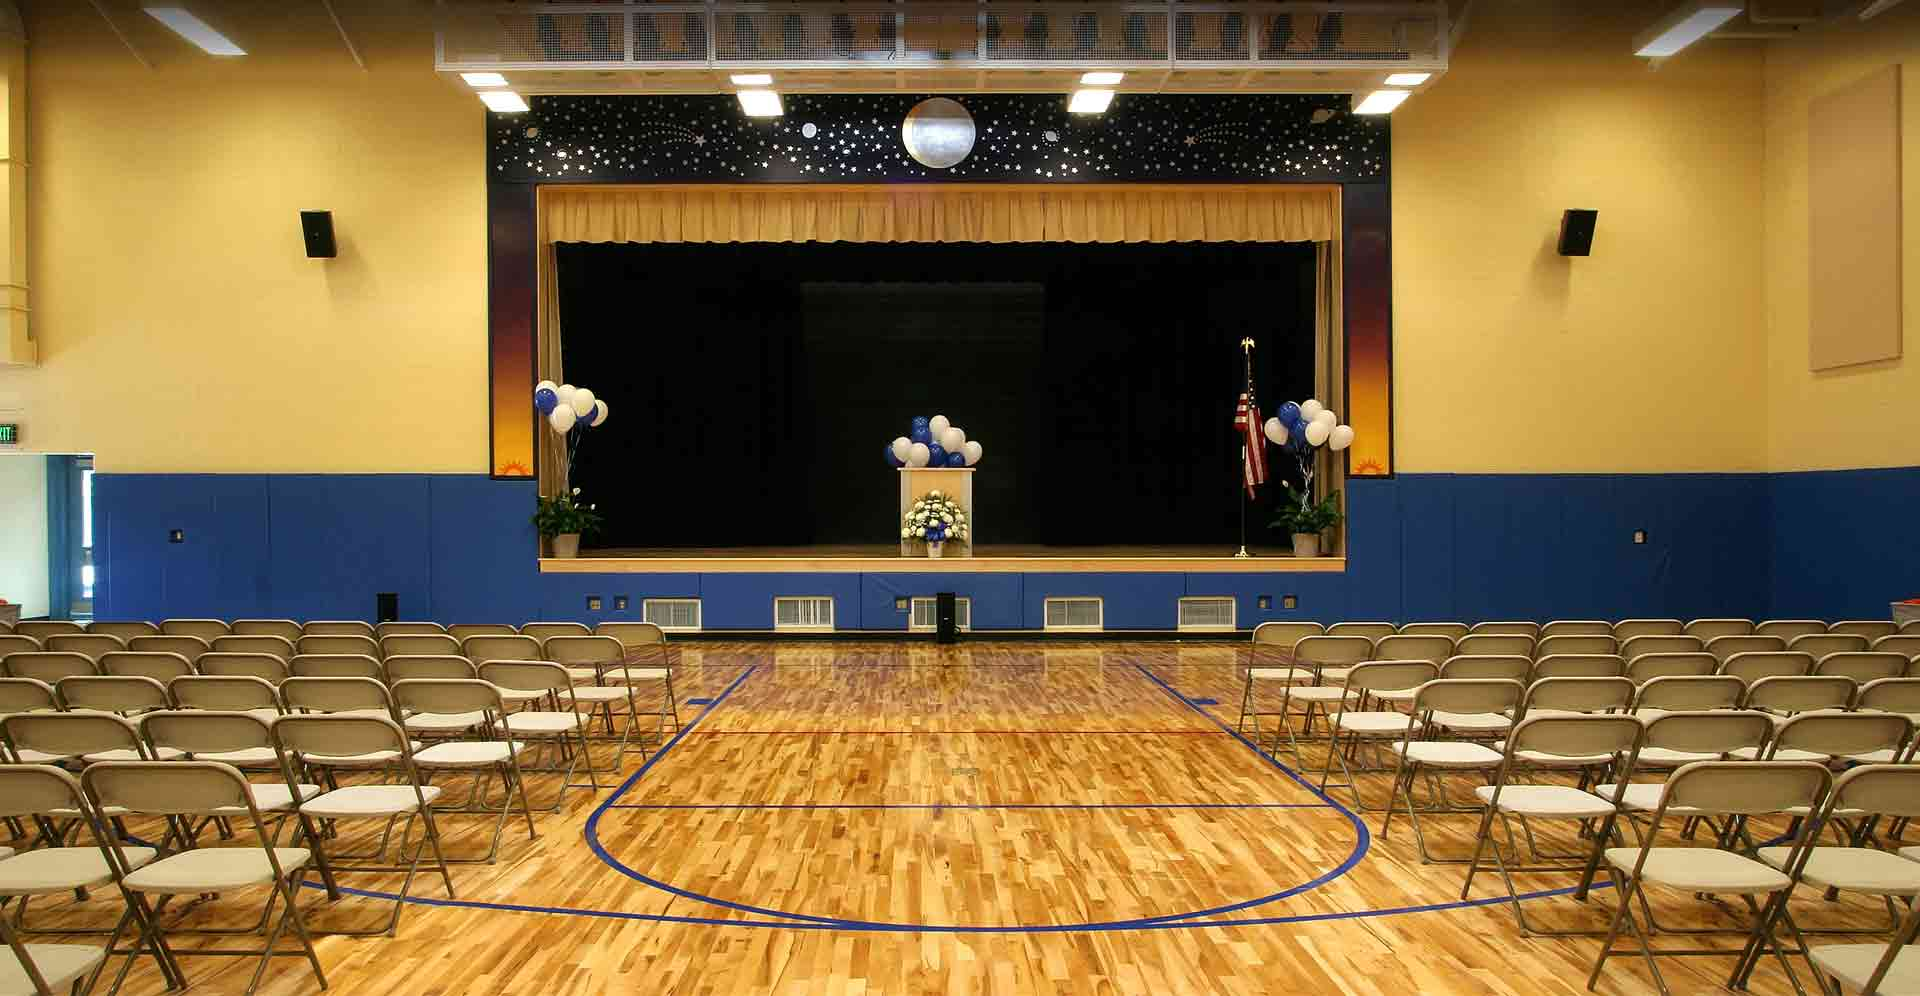 CLINTON_GYMNASIUM_AND_STAGE.jpg